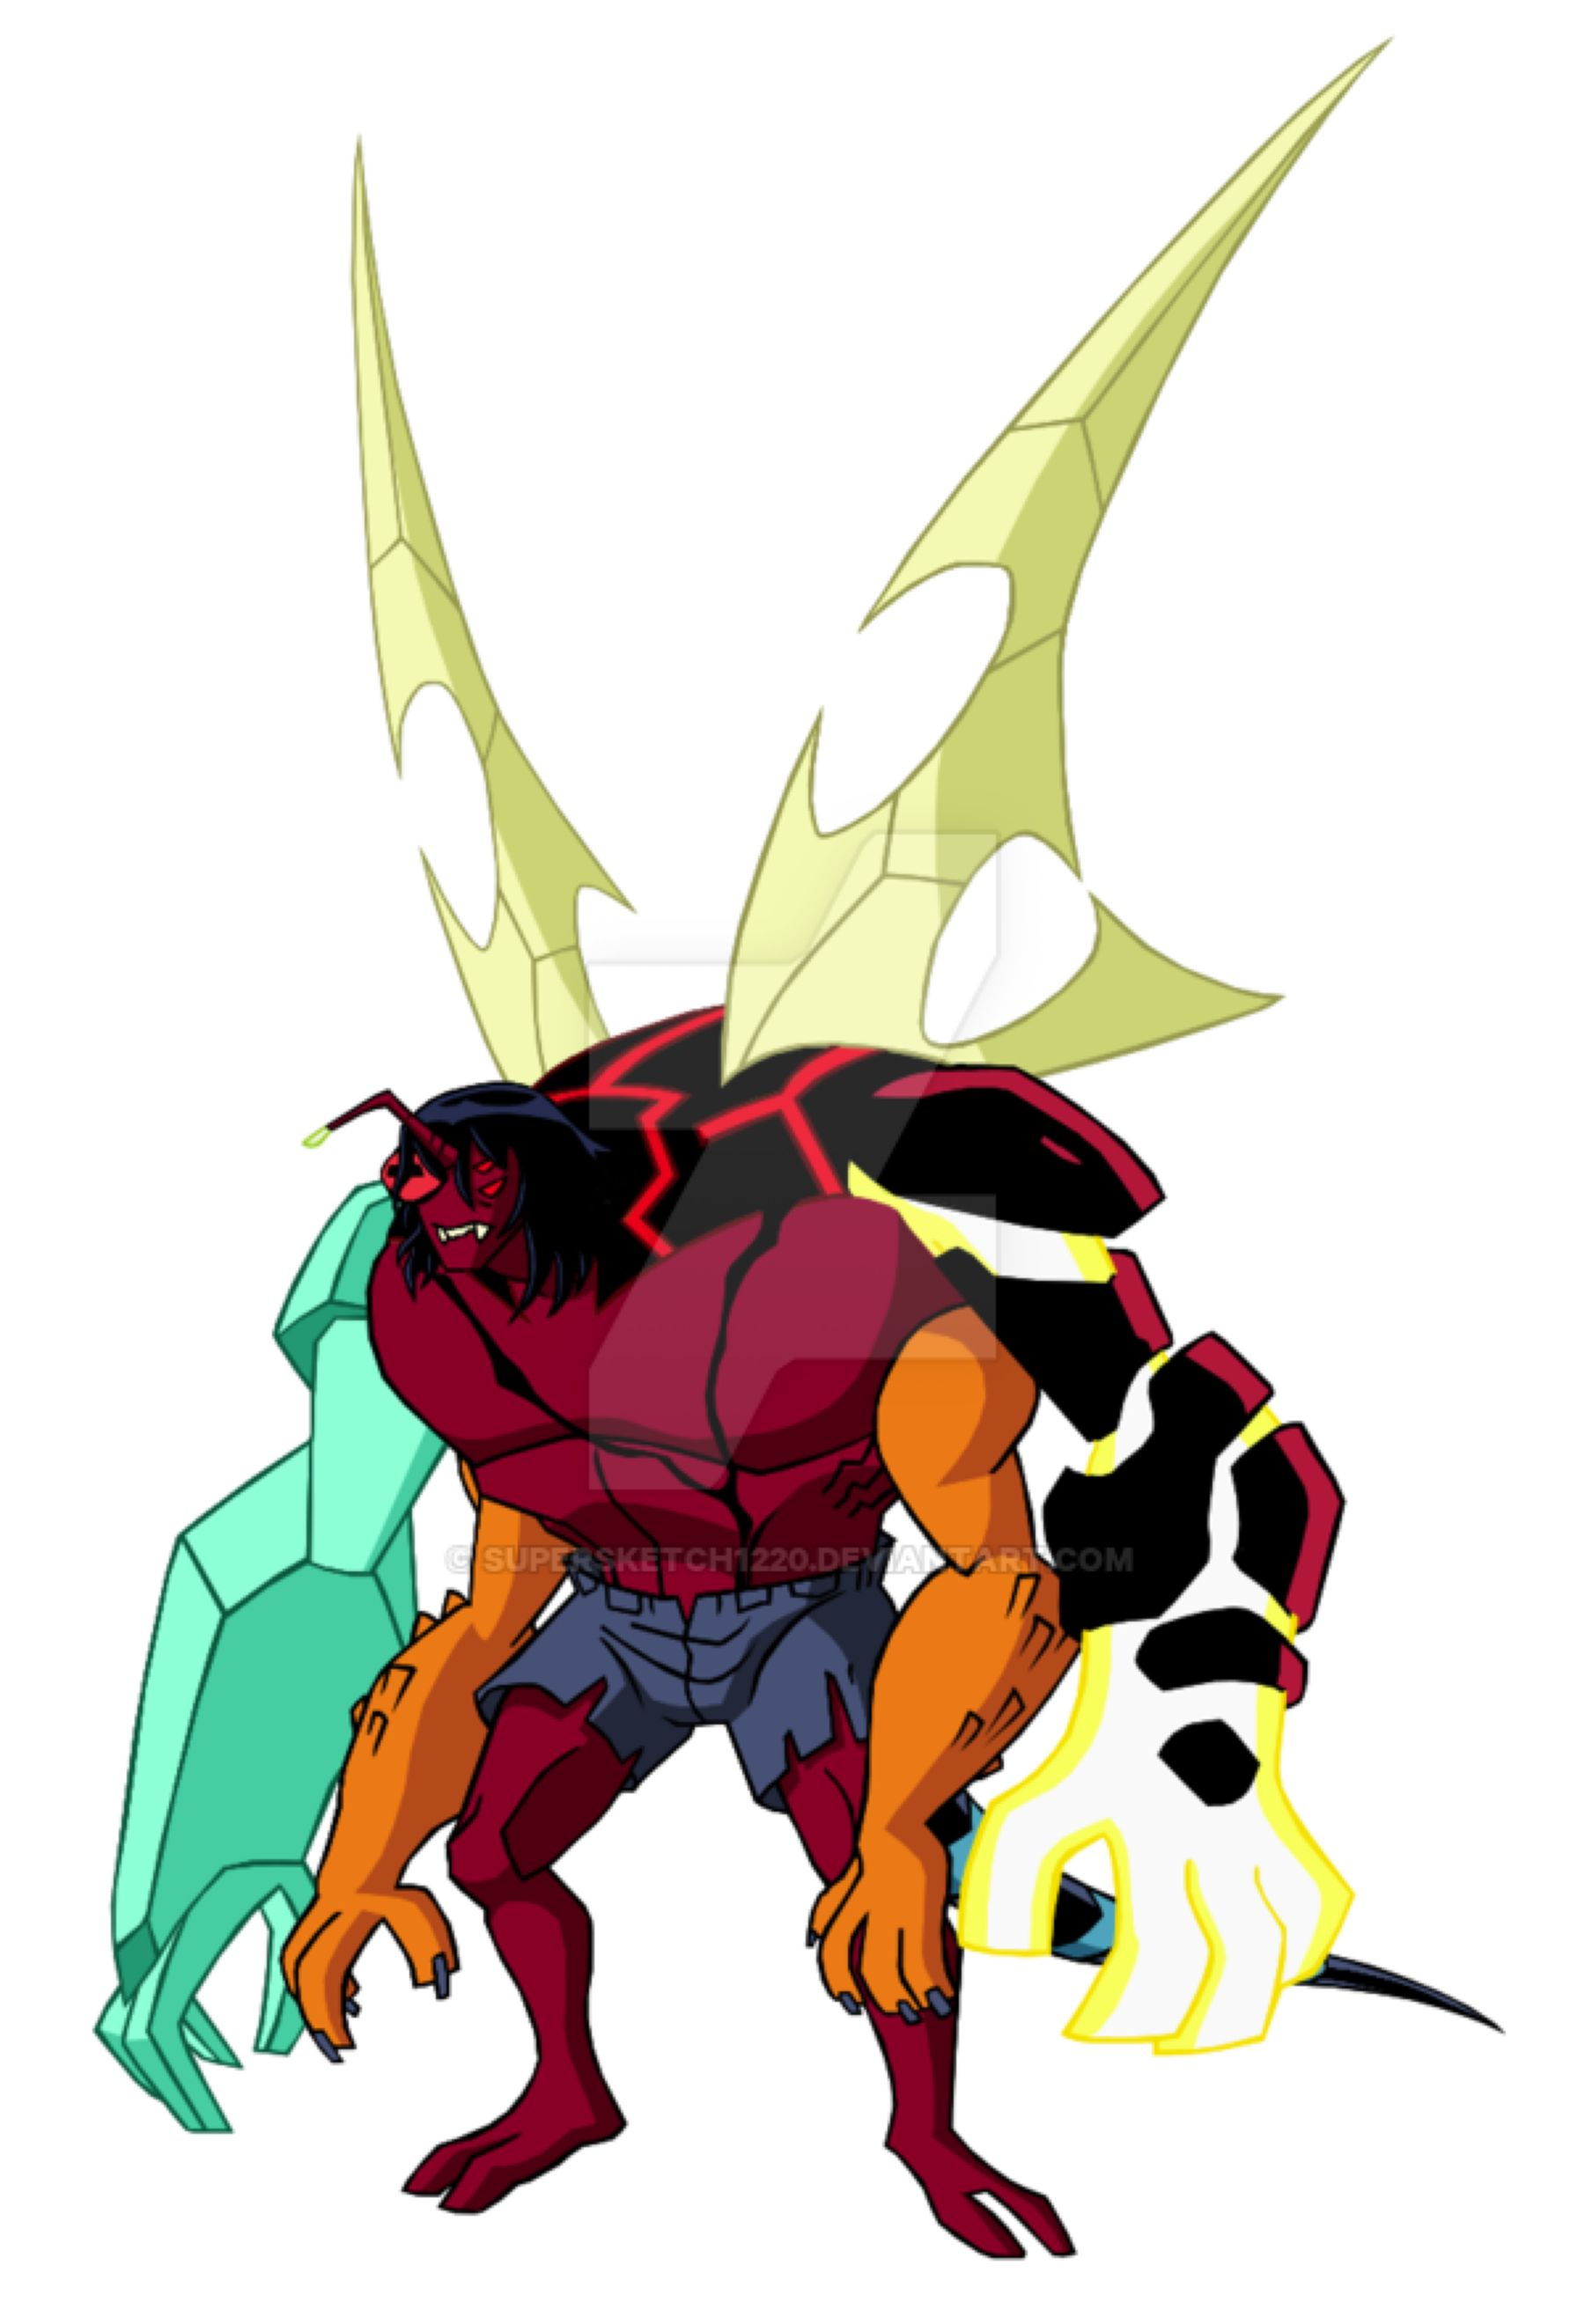 Kevin S Original Mutation Omniverse Style By Supersketch1220 On